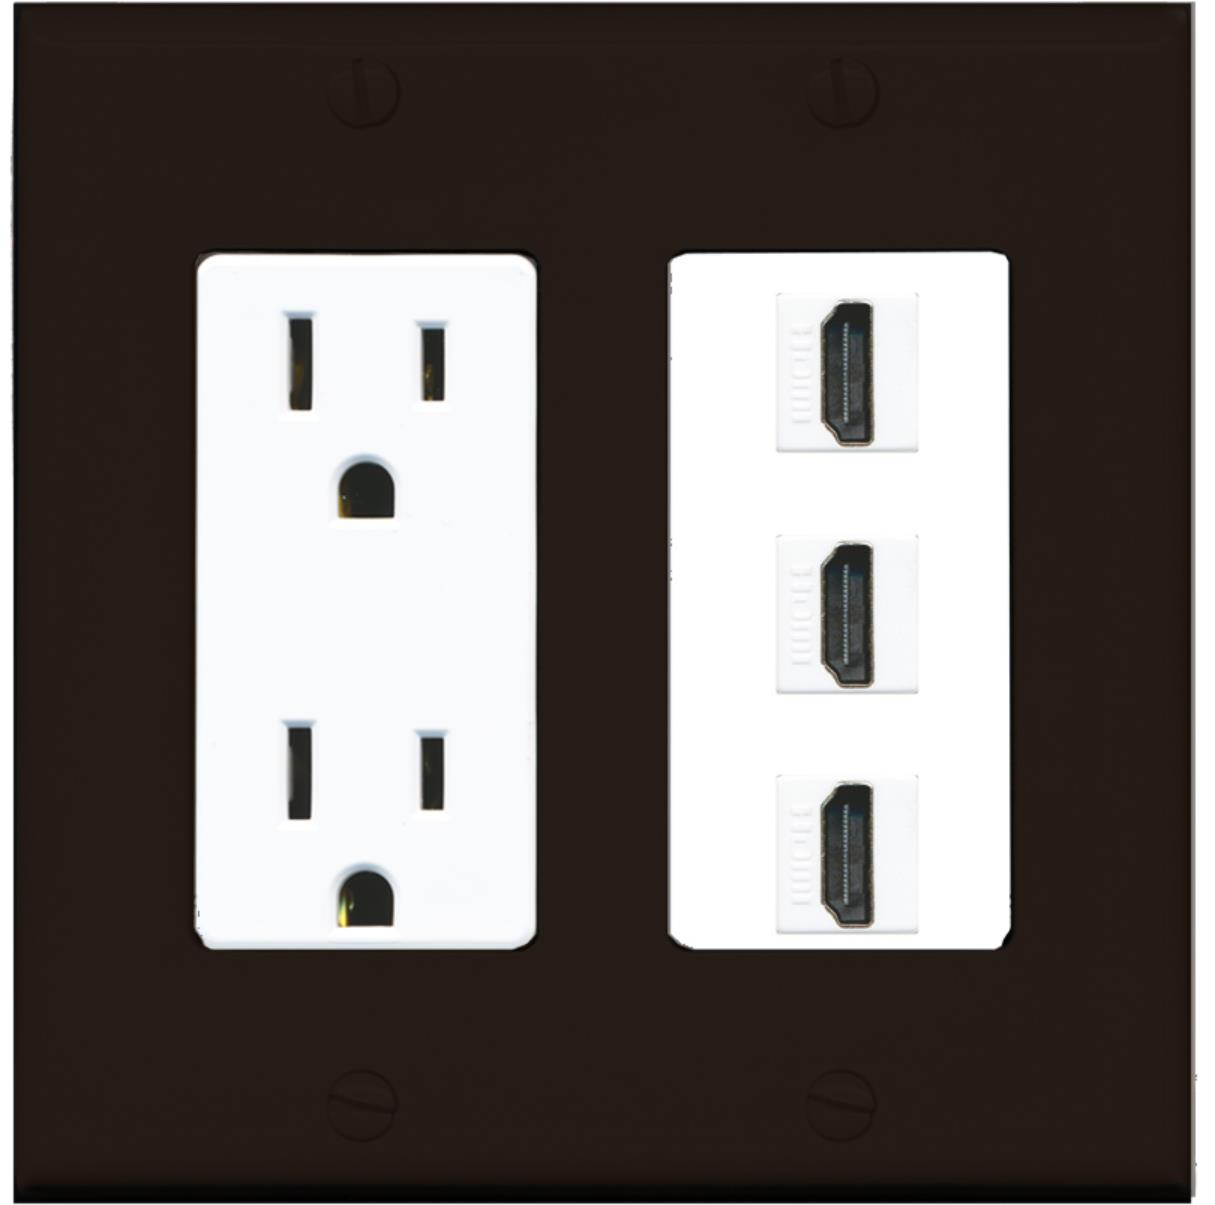 Hdmi Outlet Riteav 15 Amp Power Outlet 3 Port Hdmi Decora Wall Plate Brown White